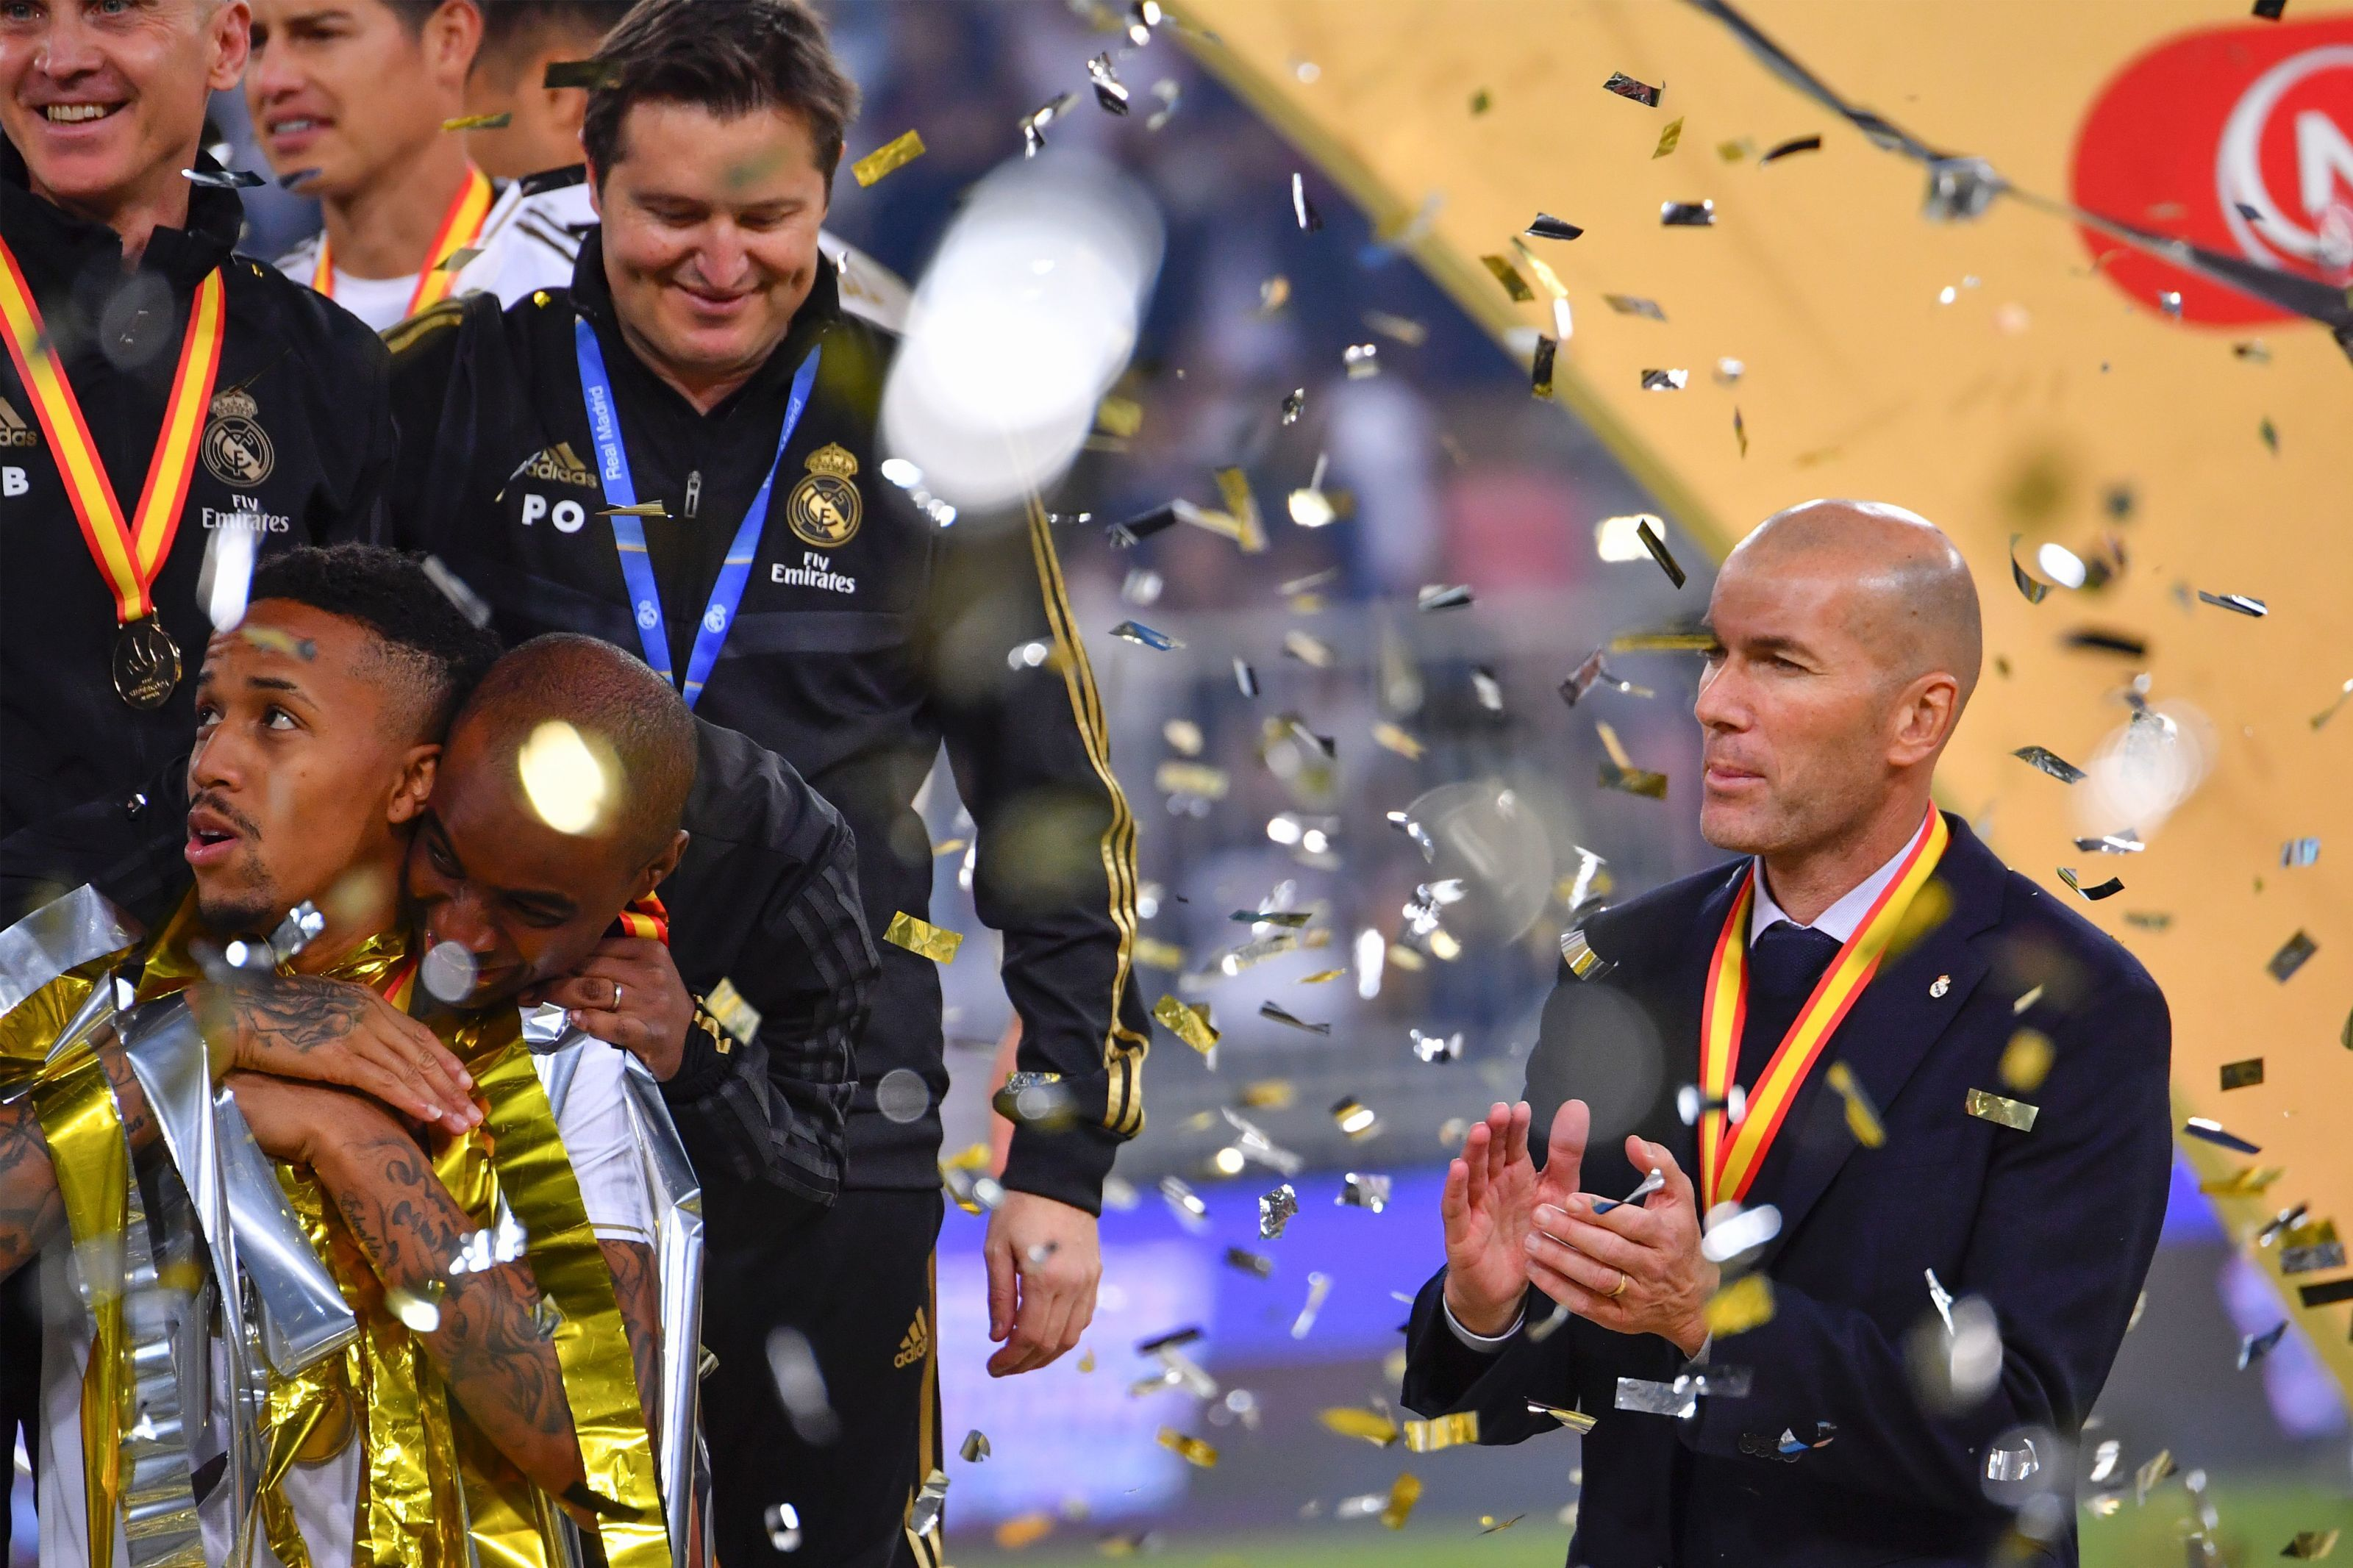 Real Madrid: Here's what makes Zinedine Zidane perfect in the biggest games